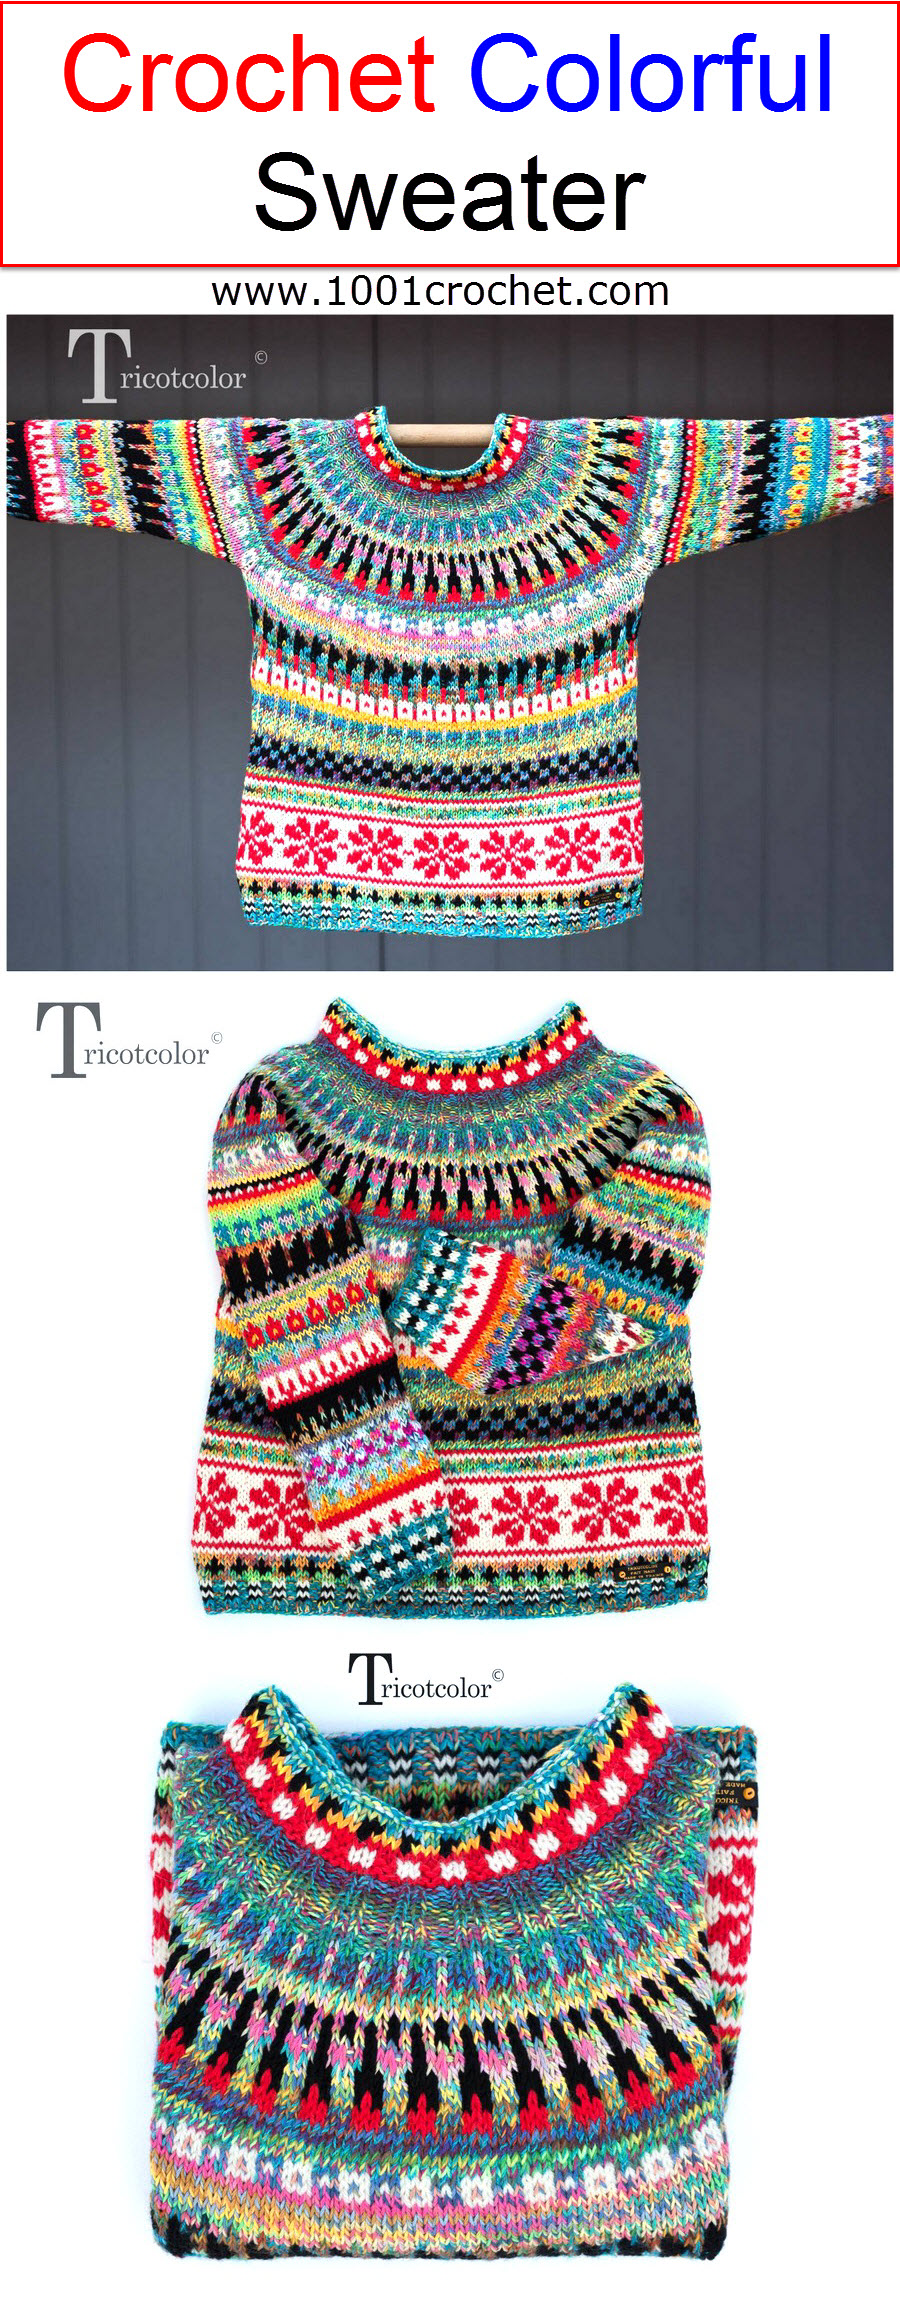 crochet-colorful-sweater